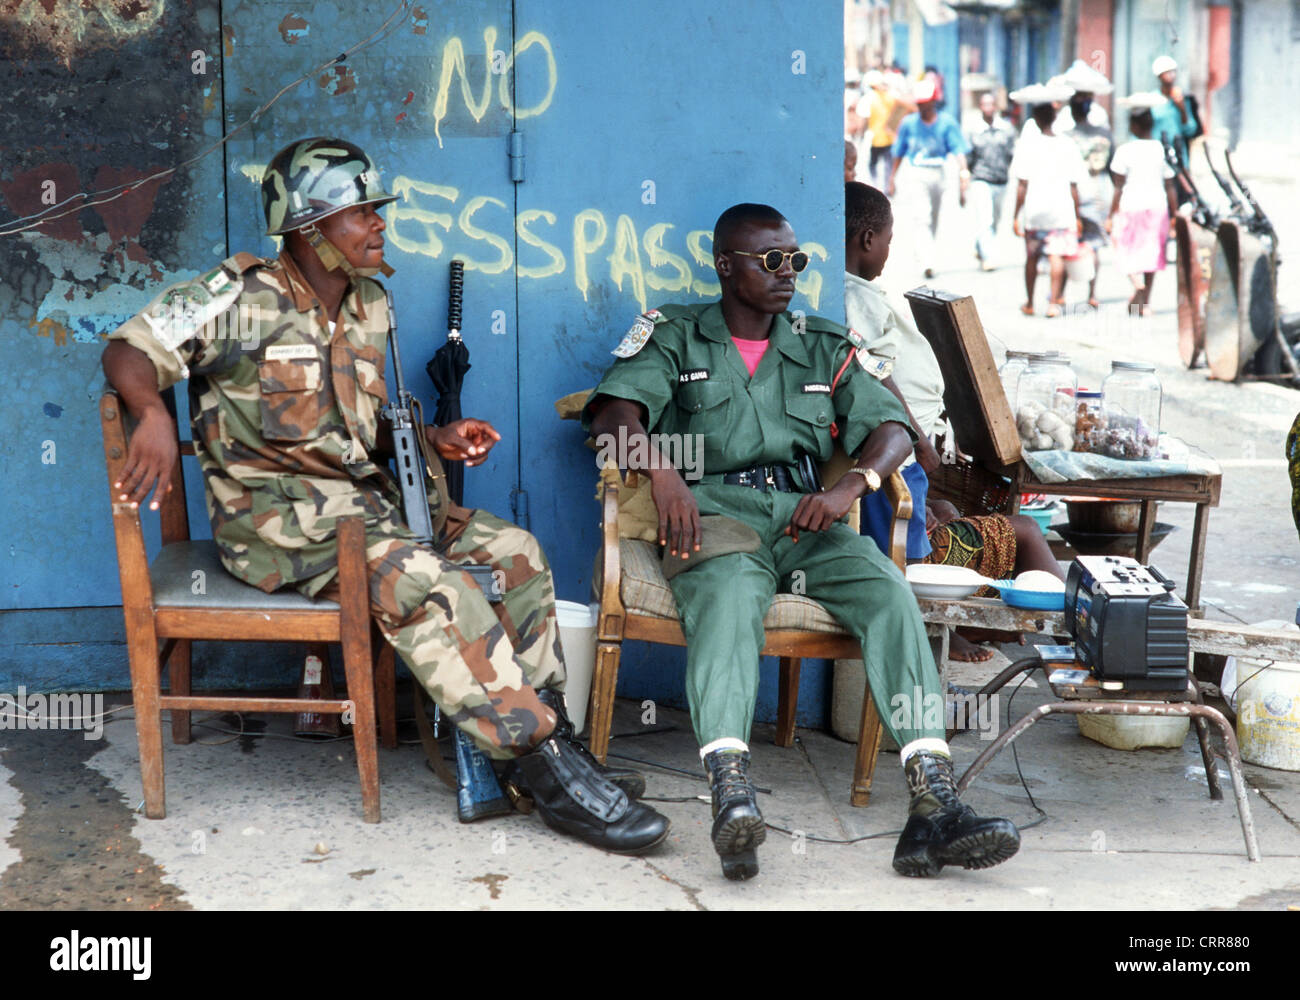 Liberia, a checkpoint of the ECOMOG peacekeeping force in Monrovia - Stock Image